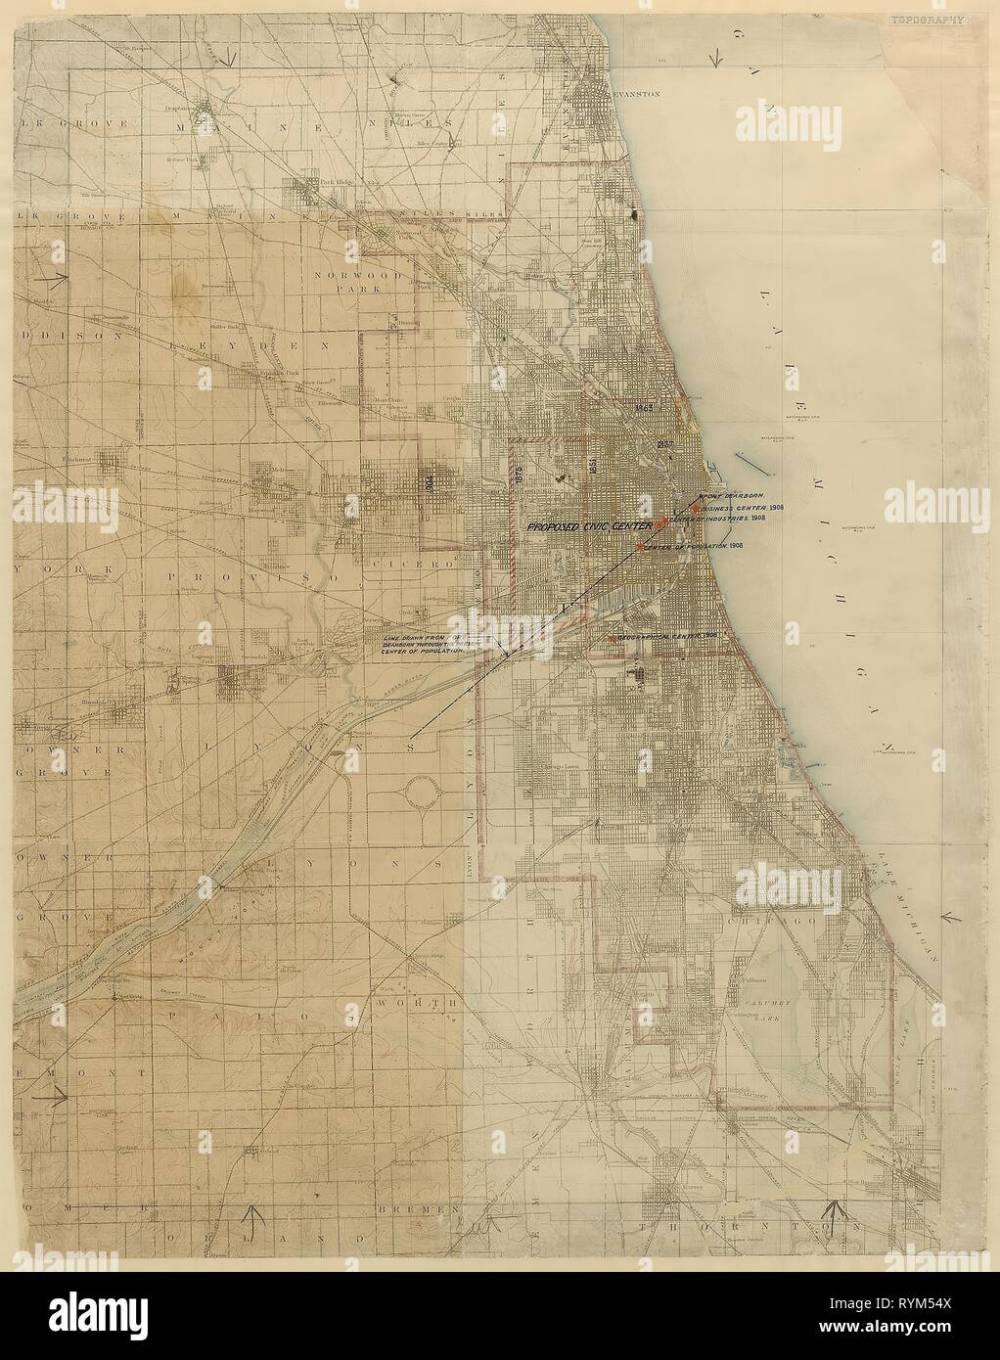 medium resolution of plan of chicago chicago illinois diagram showing city growth daniel hudson burnham american 1846 1912 edward herbert bennett american born england